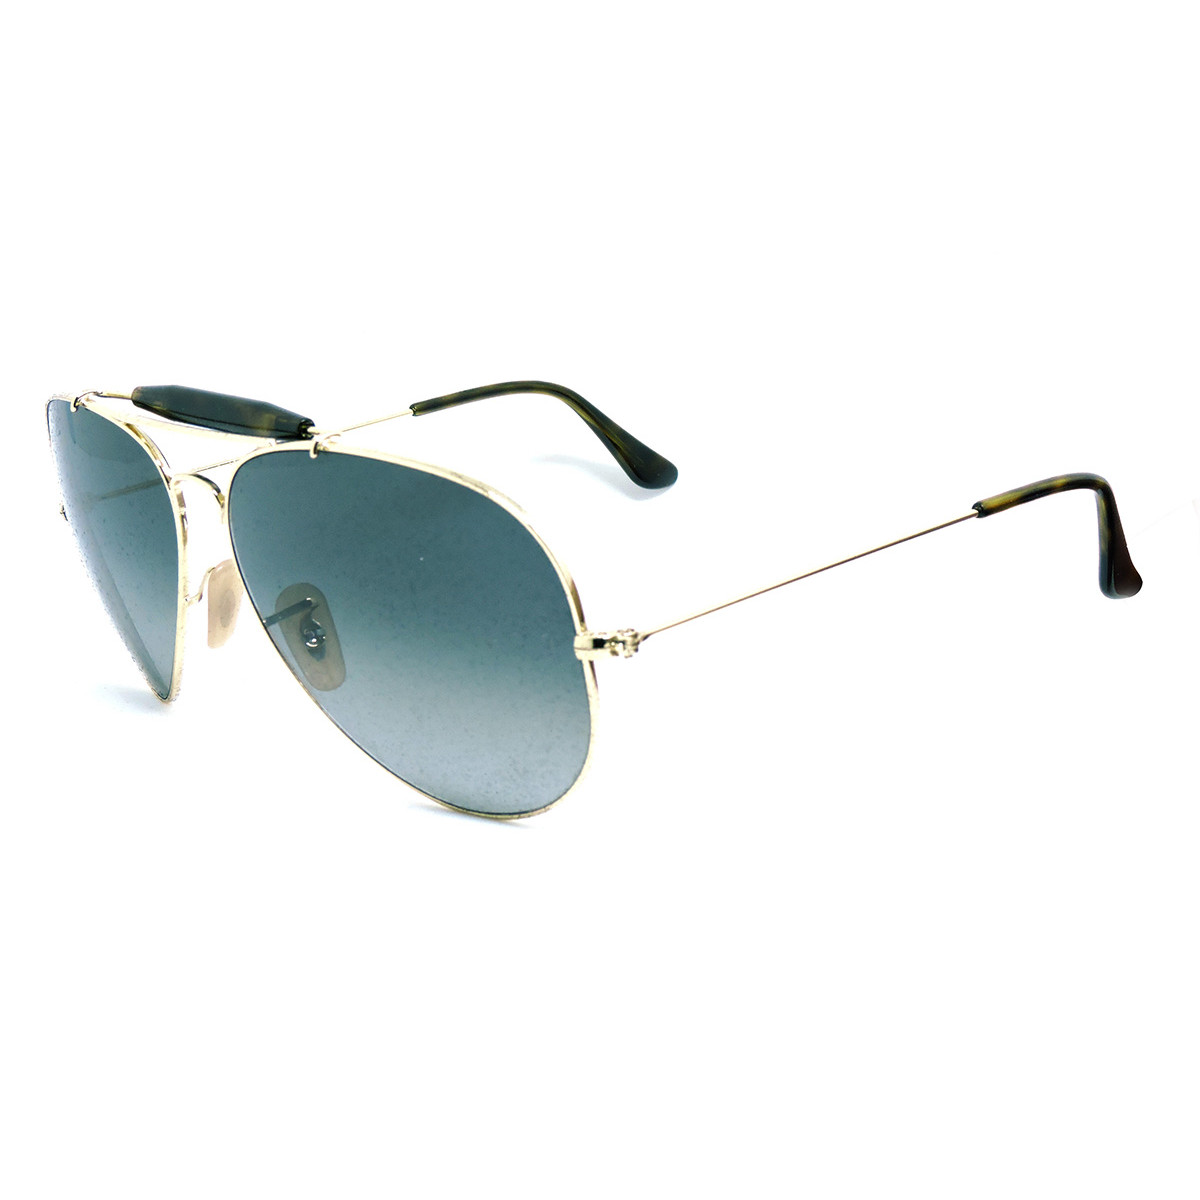 Óculos de Sol Ray Ban OutdoorsMan II RB3029 181/71